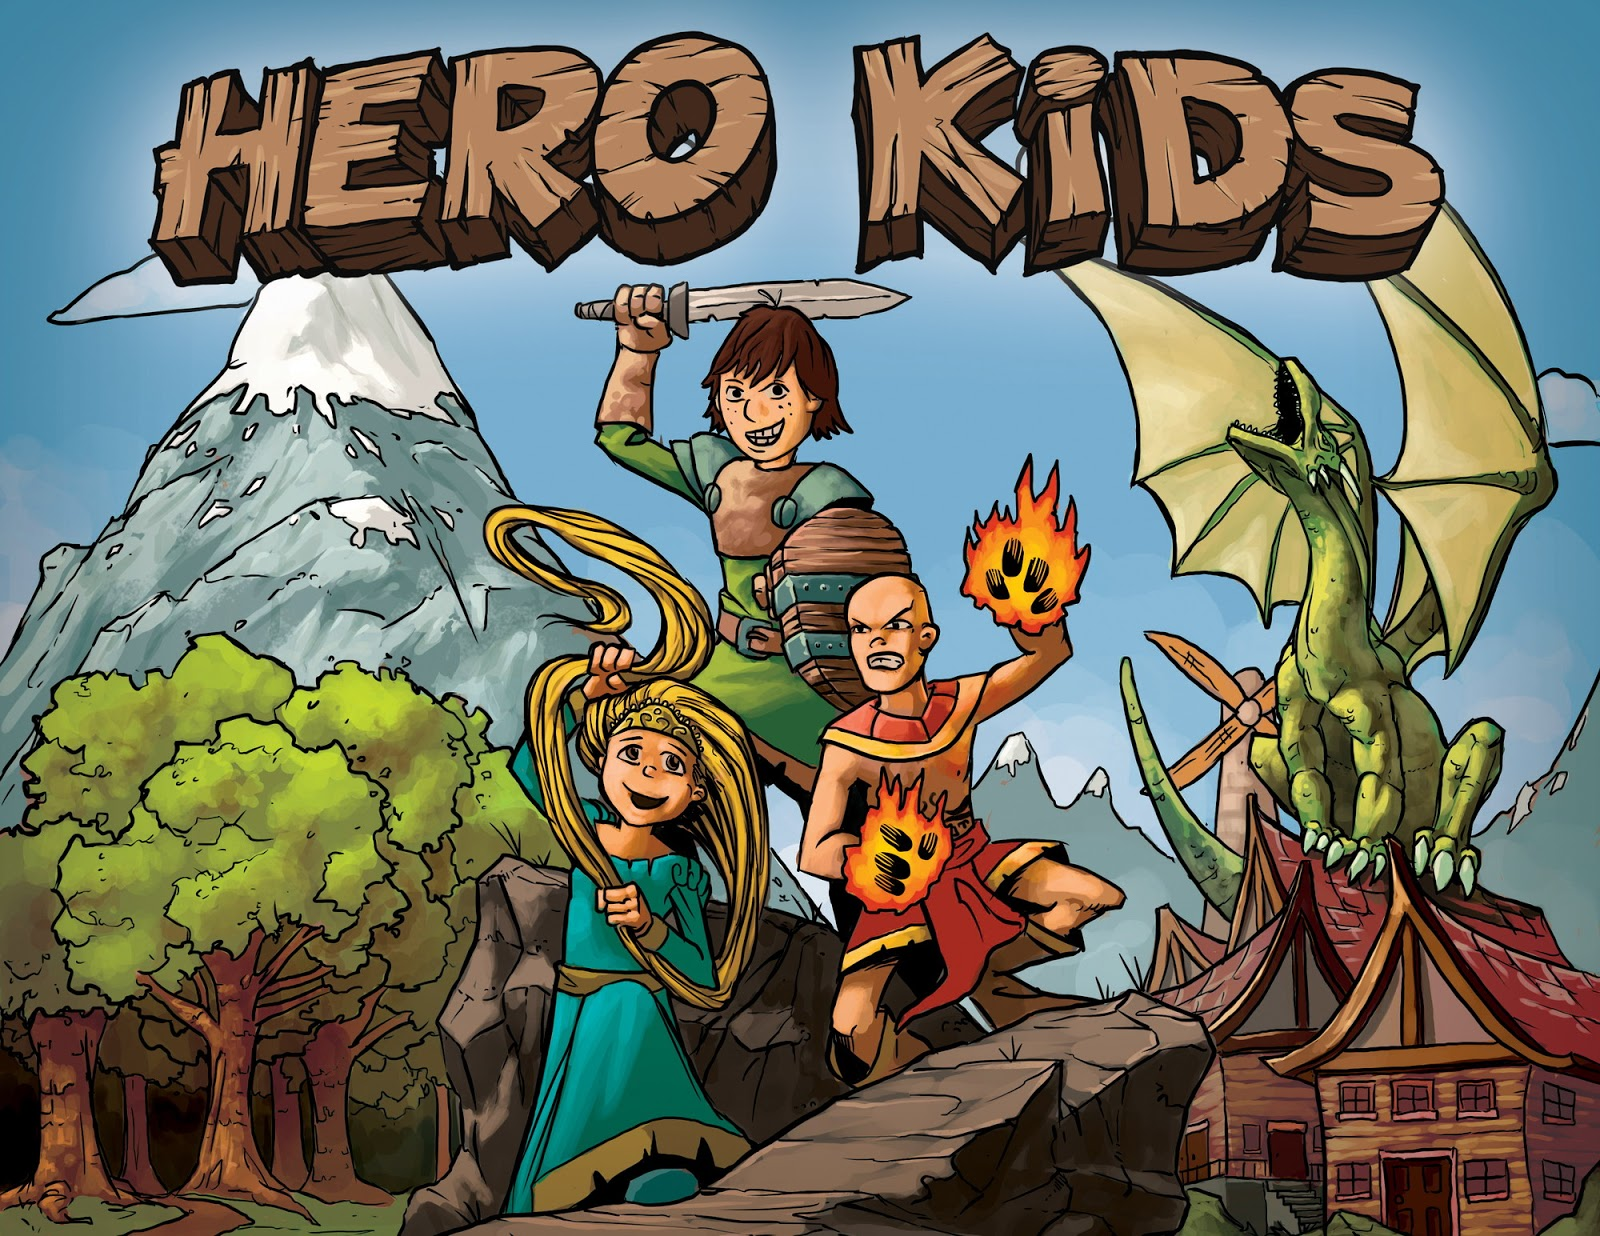 Tabletop RPG Review: Hero Kids